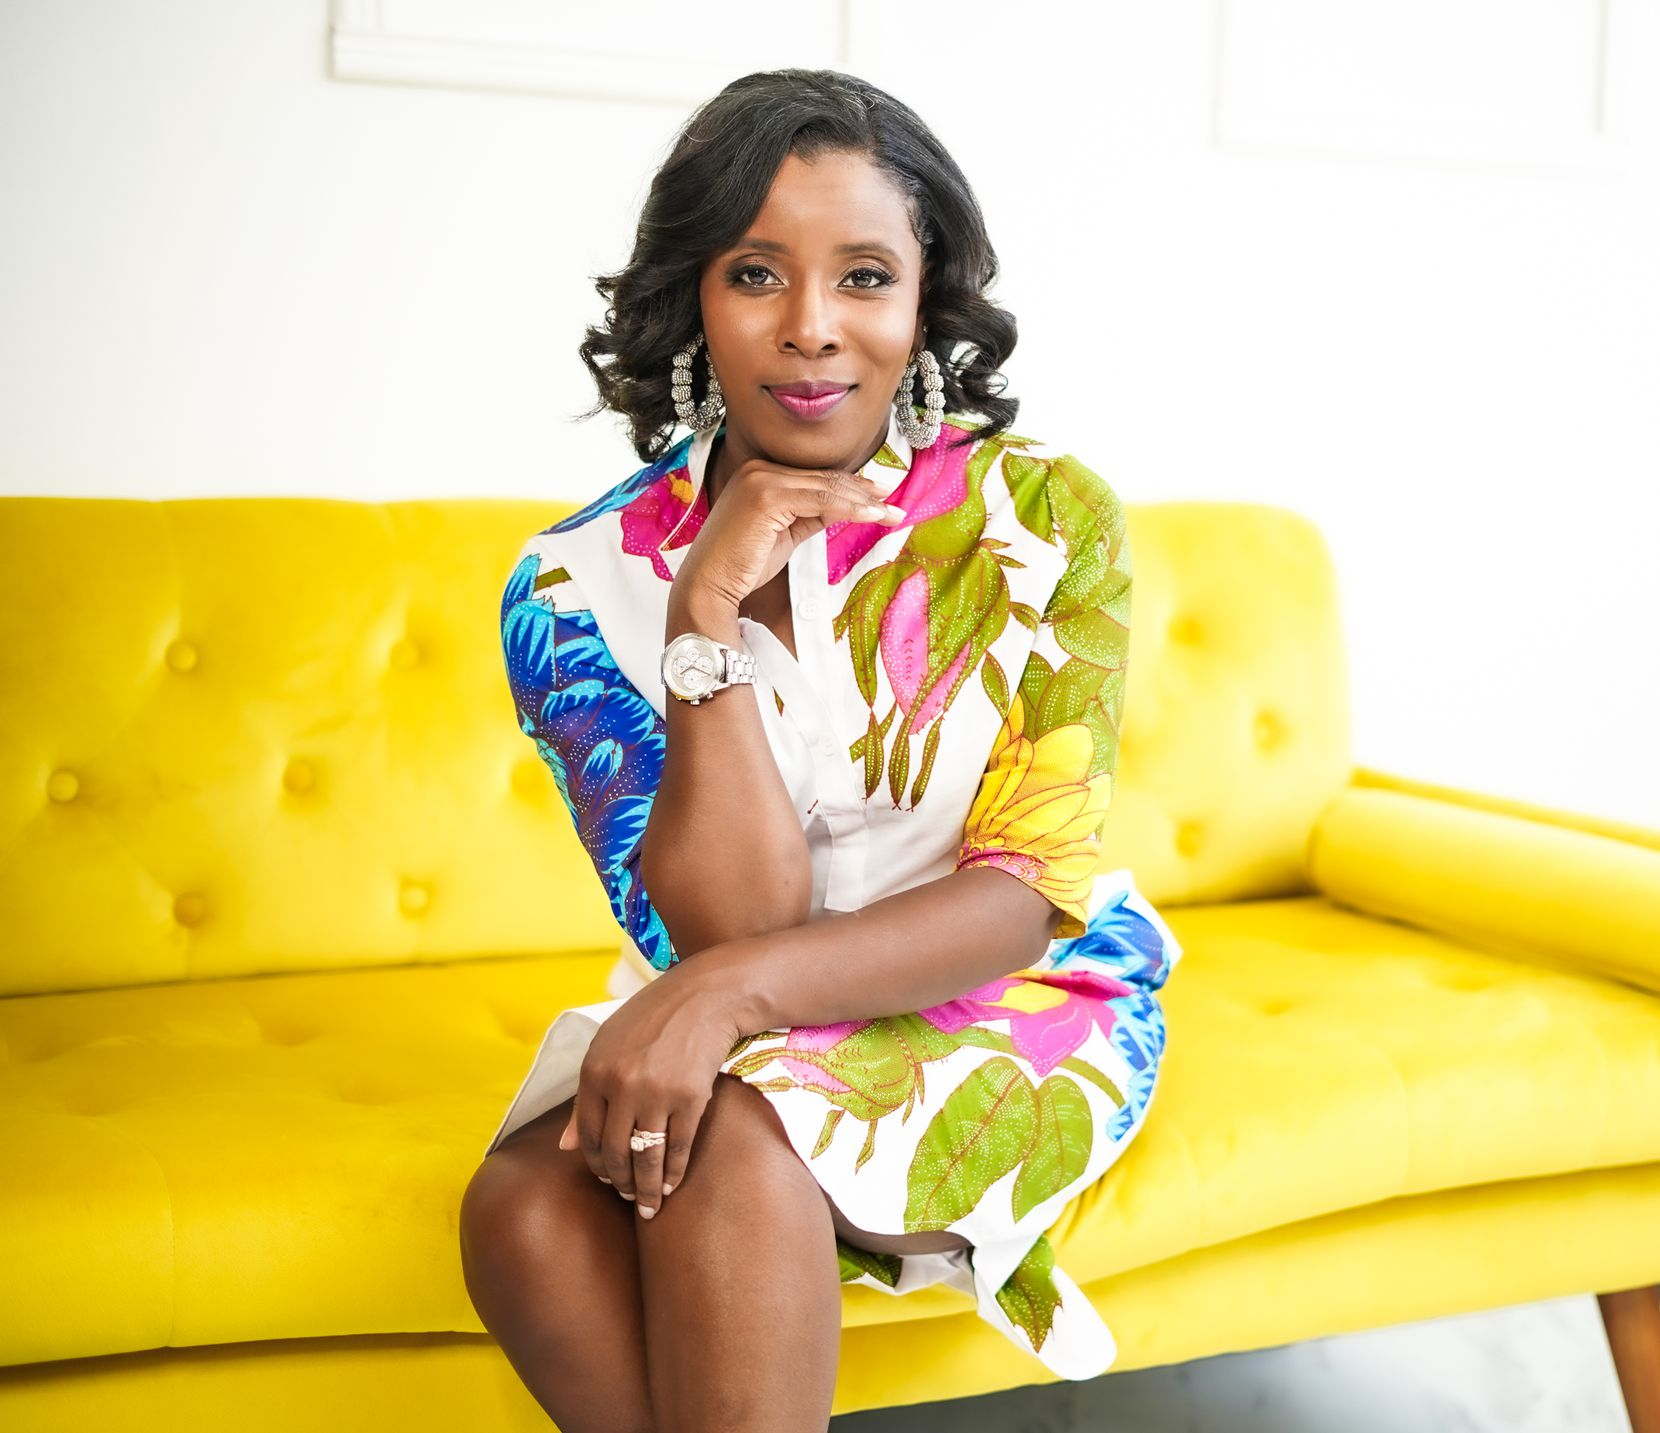 Hope Oriabure-Hunter developed her business, Black-Tie Babysitting, based on the need for child care during social events.